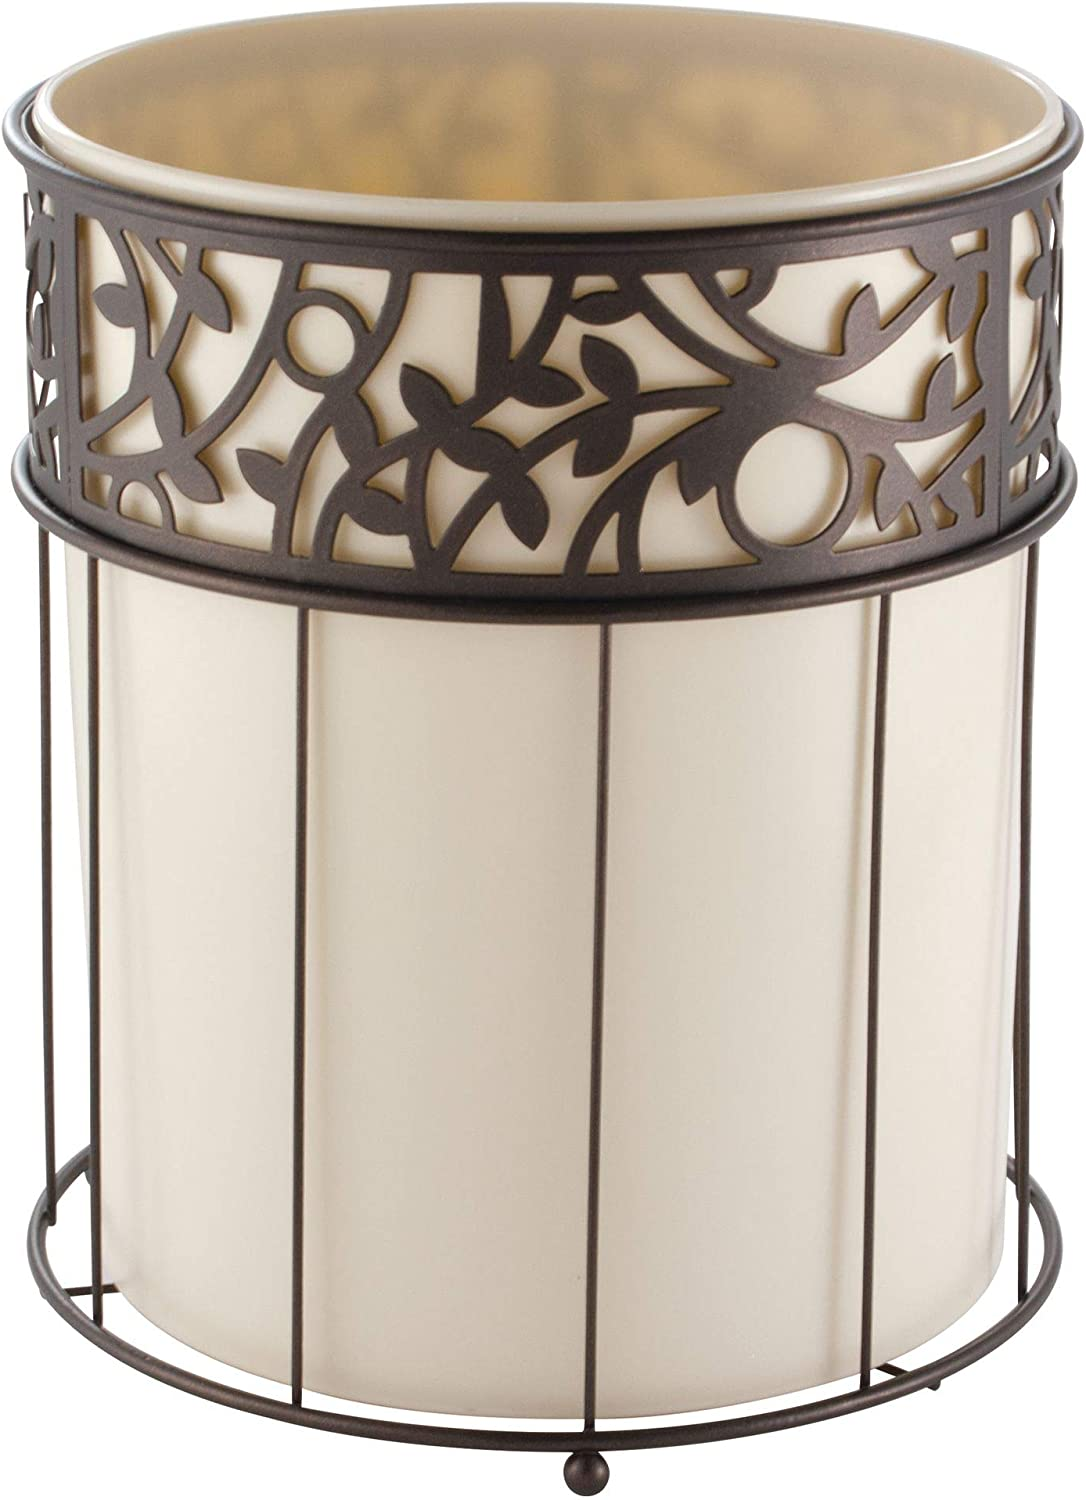 iDesign Vine Metal and Plastic Wastebasket Trash Can Garbage Can for Bathroom, Bedroom, Home Office, Kitchen, Patio, Dorm, College, Vanilla Tan and Bronze